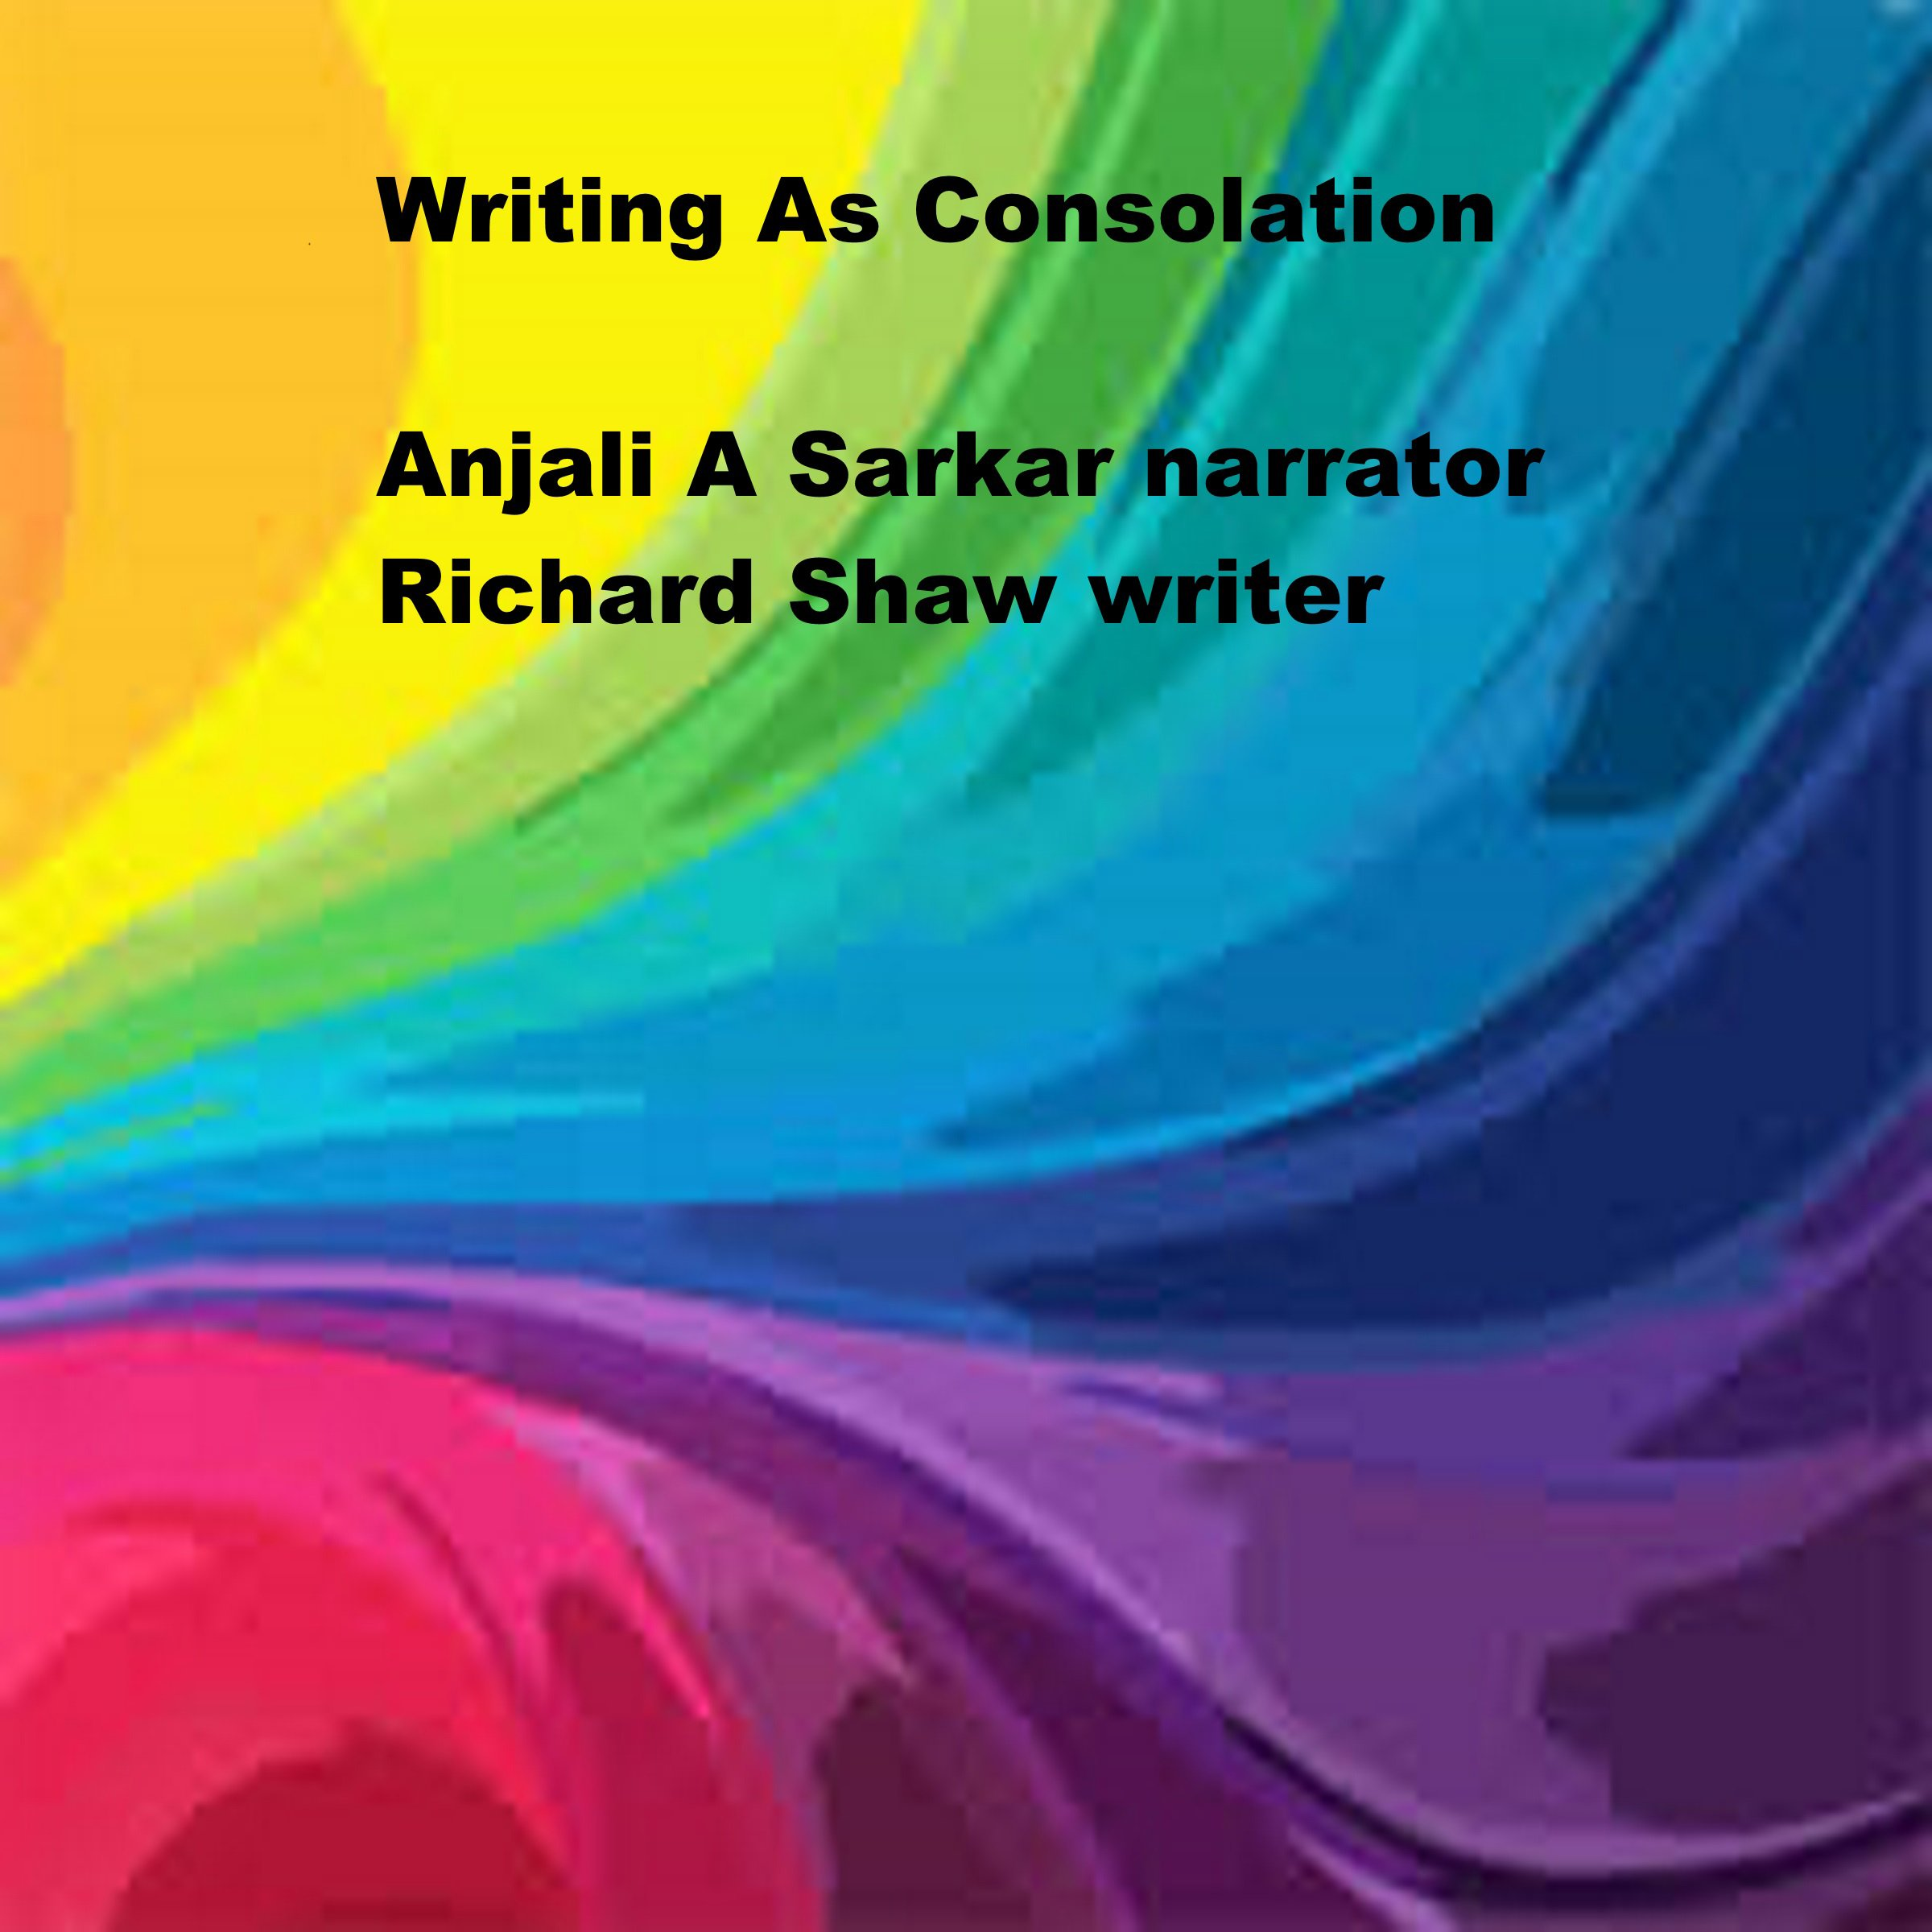 Writing as Consolation